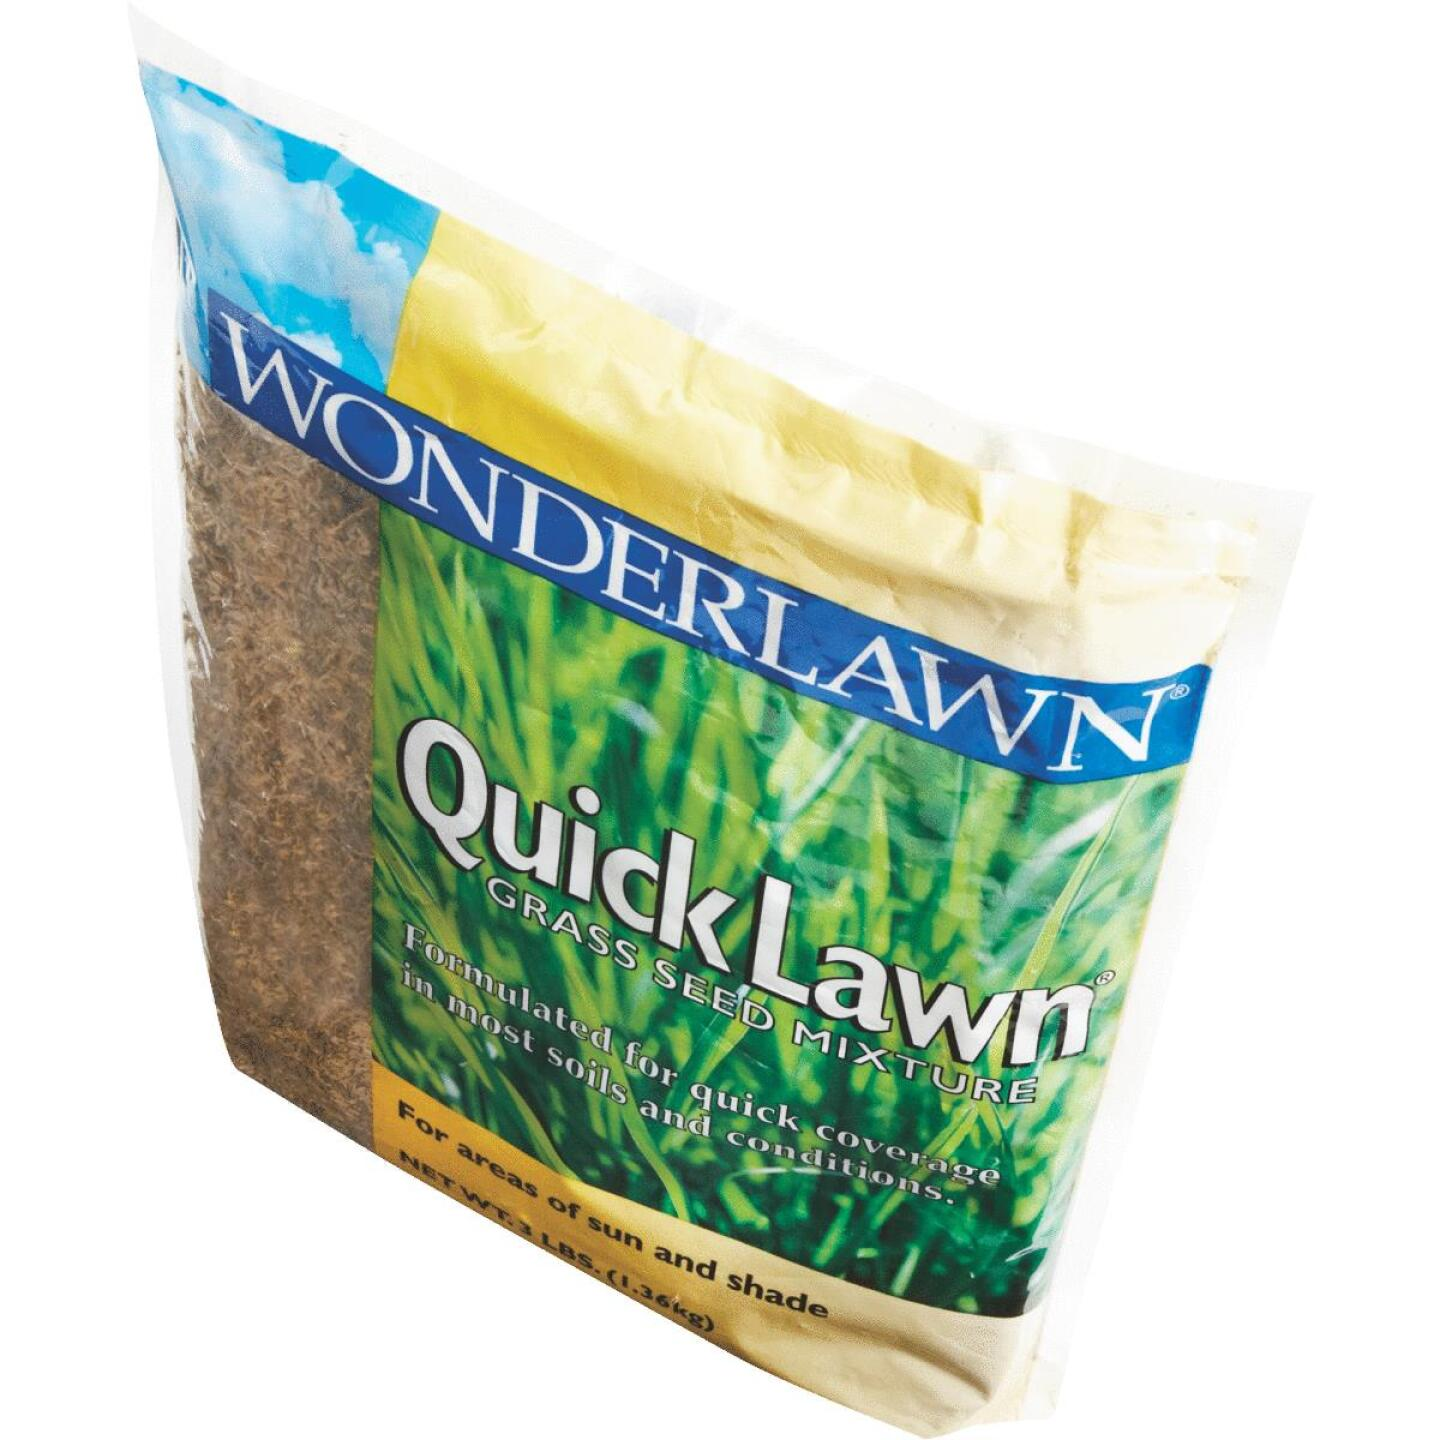 Wonderlawn Quick Lawn 3 Lb. 900 Sq. Ft. Coverage Annual & Perennial Ryegrass Grass Seed Image 3